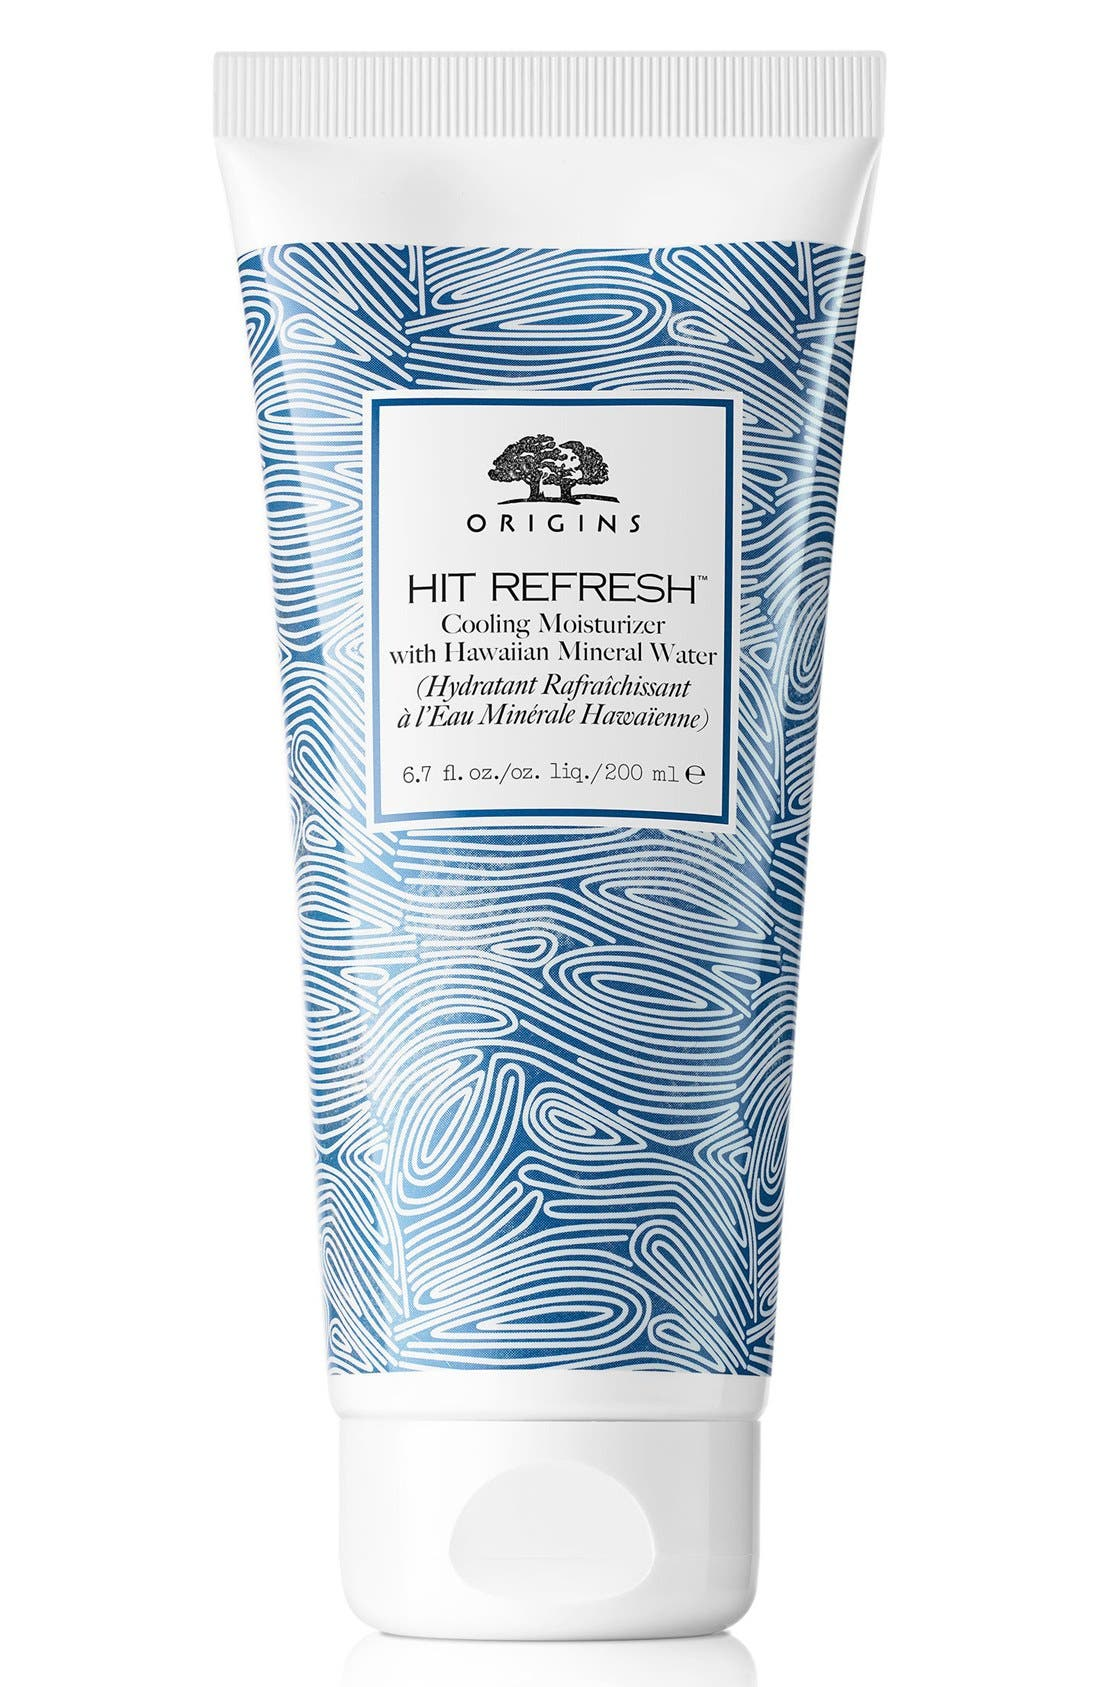 Origins Hit Refresh™ Cooling Moisturizer with Hawaiian Mineral Water